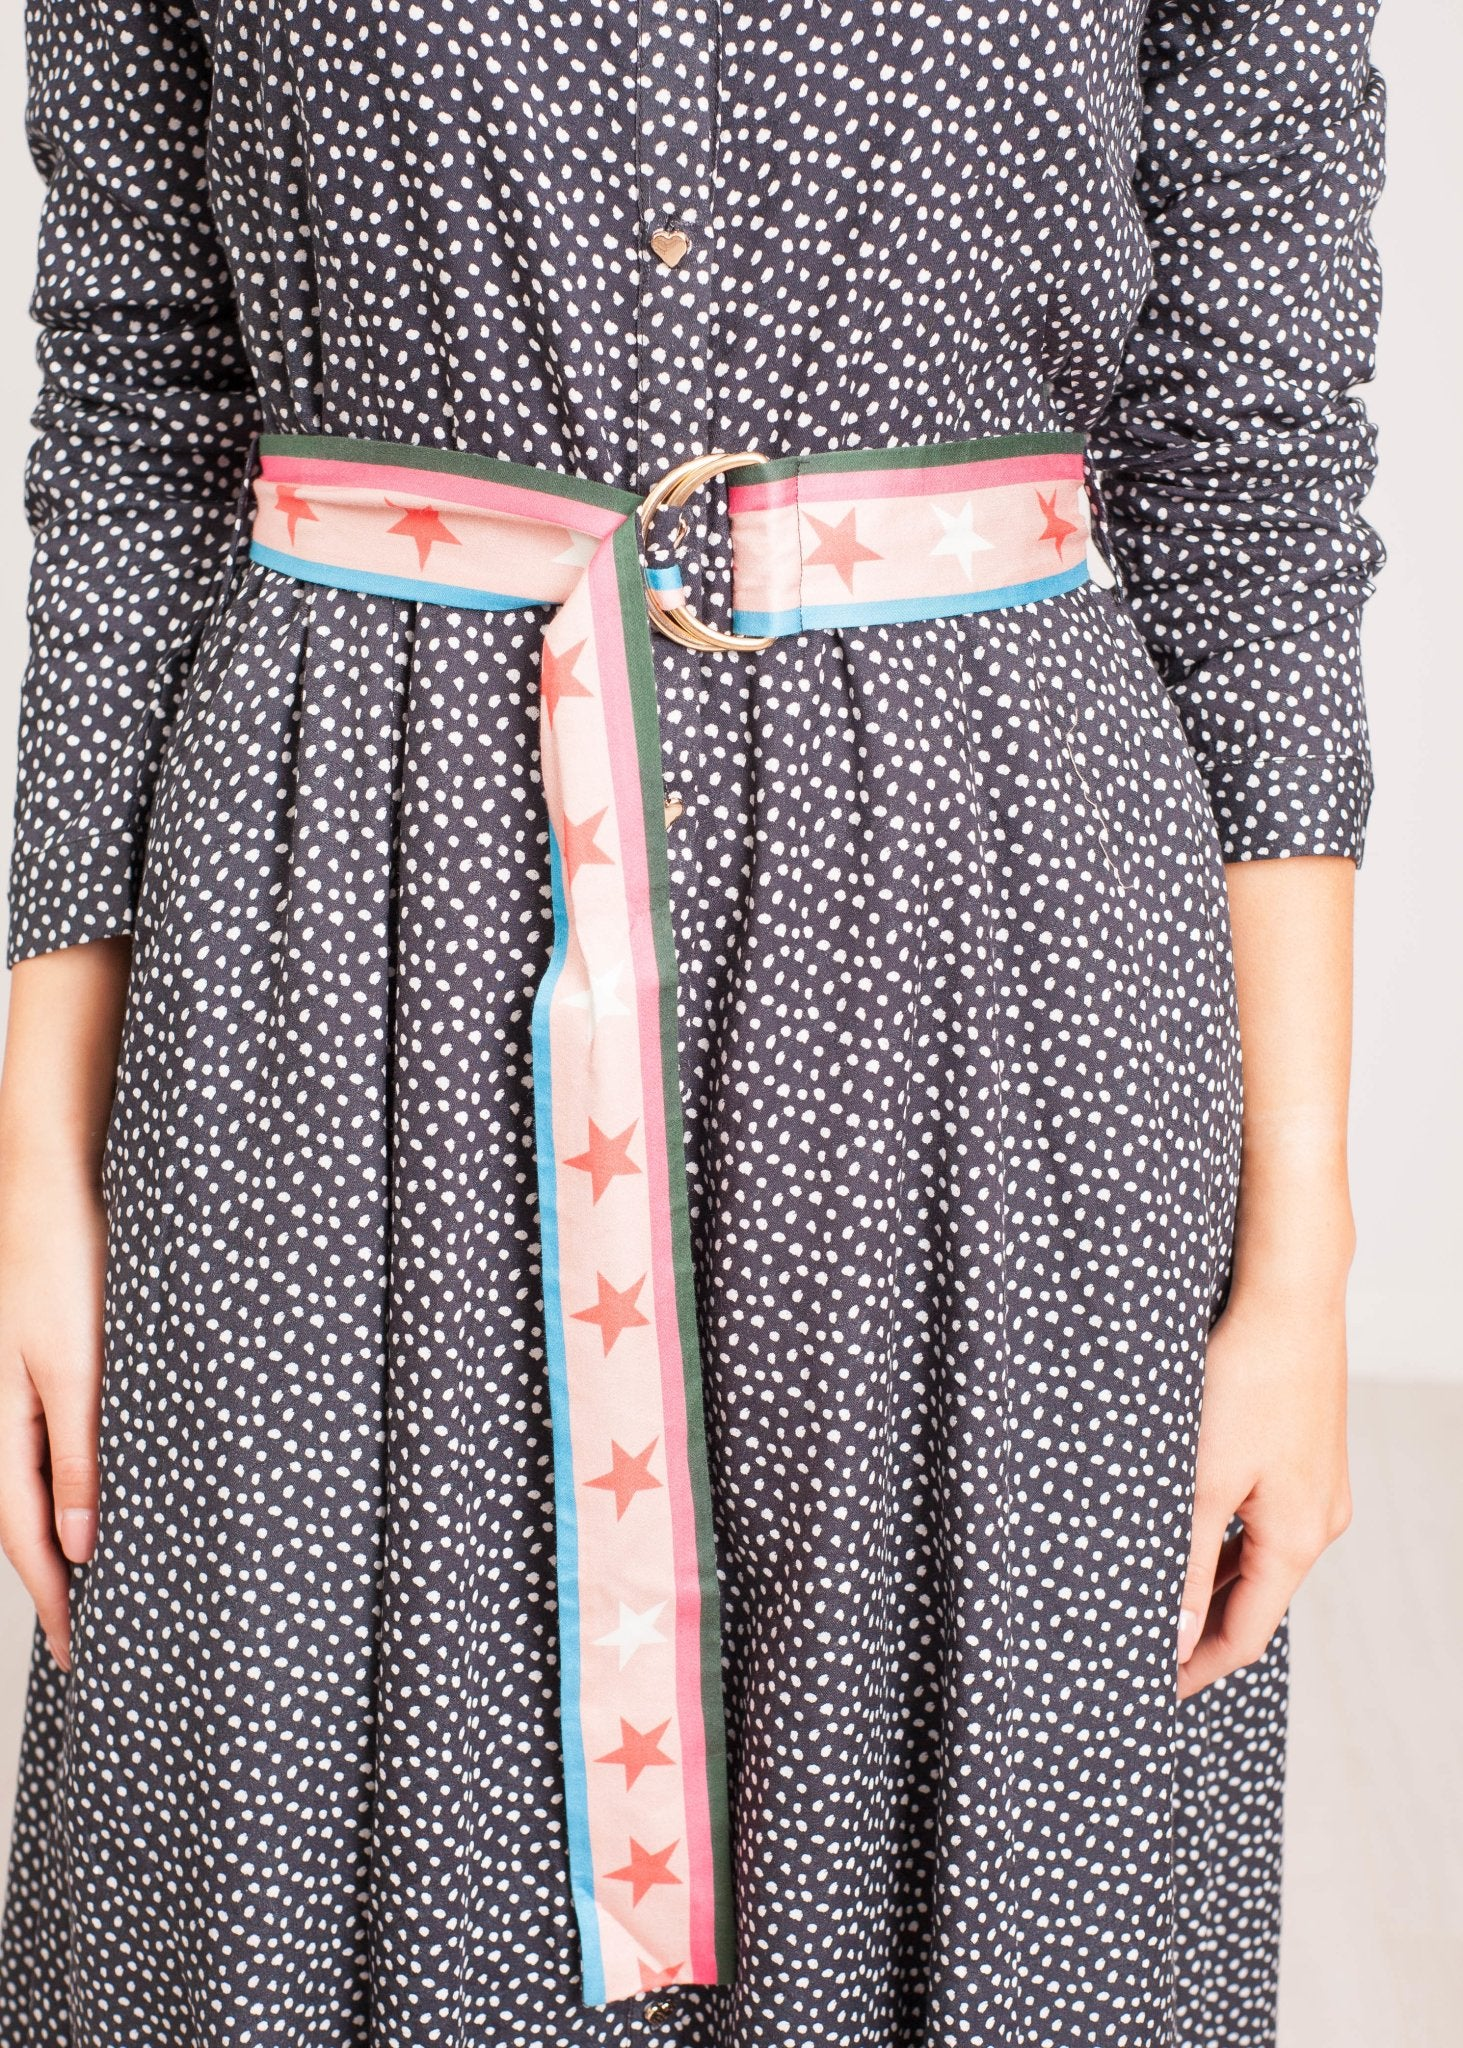 Emily Polka Dot Shirt Dress In Black - The Walk in Wardrobe